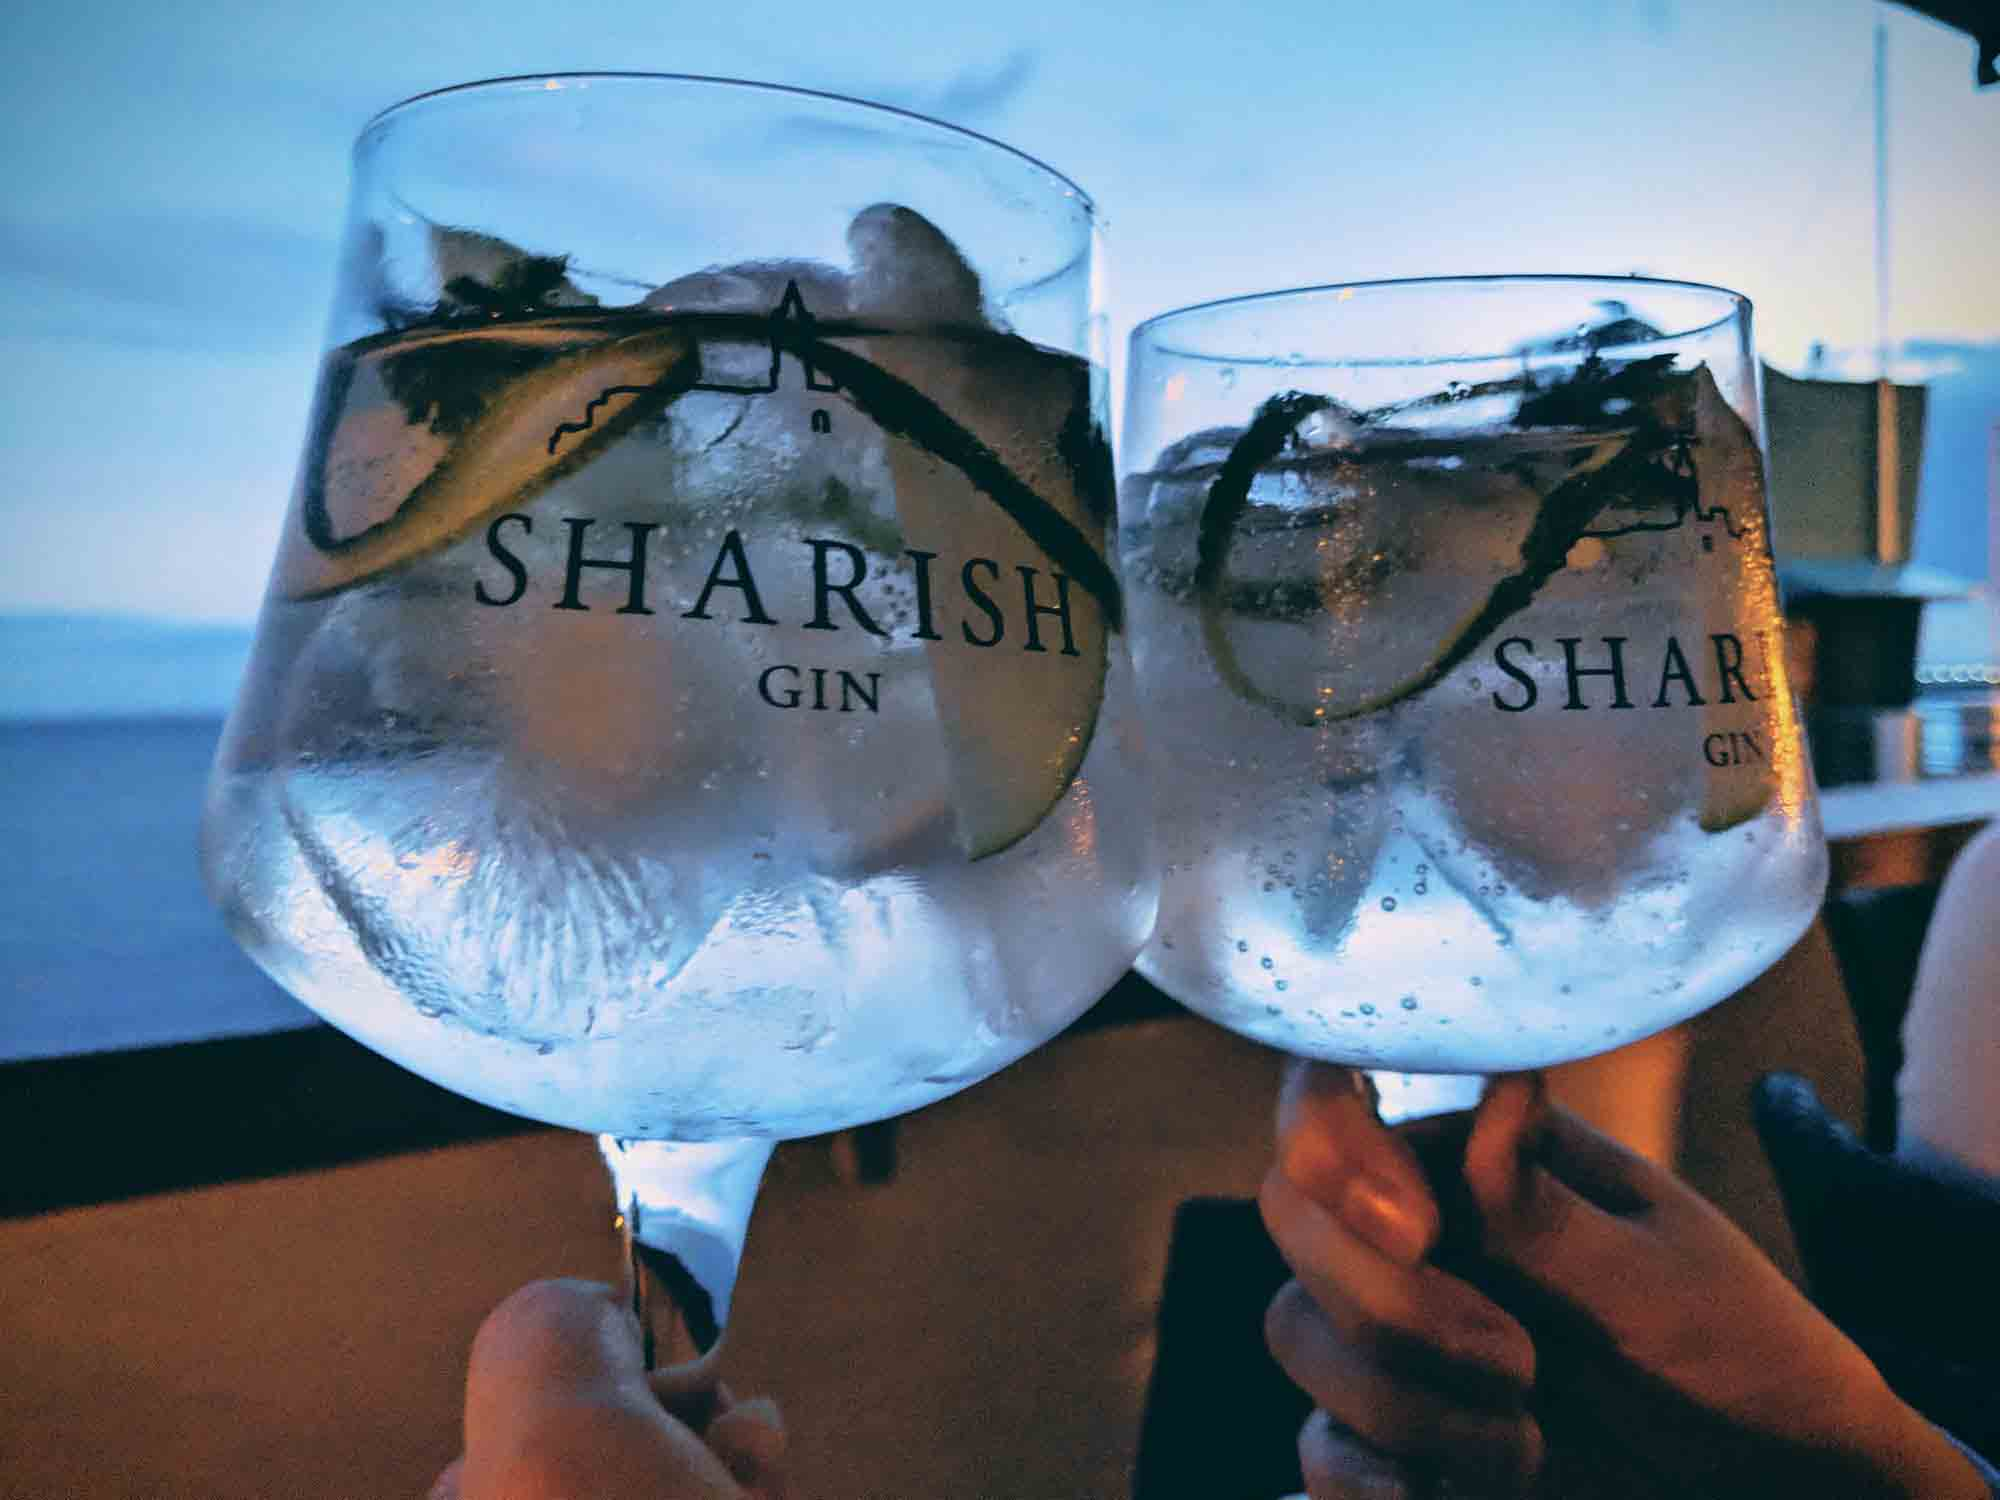 Sharish Gin